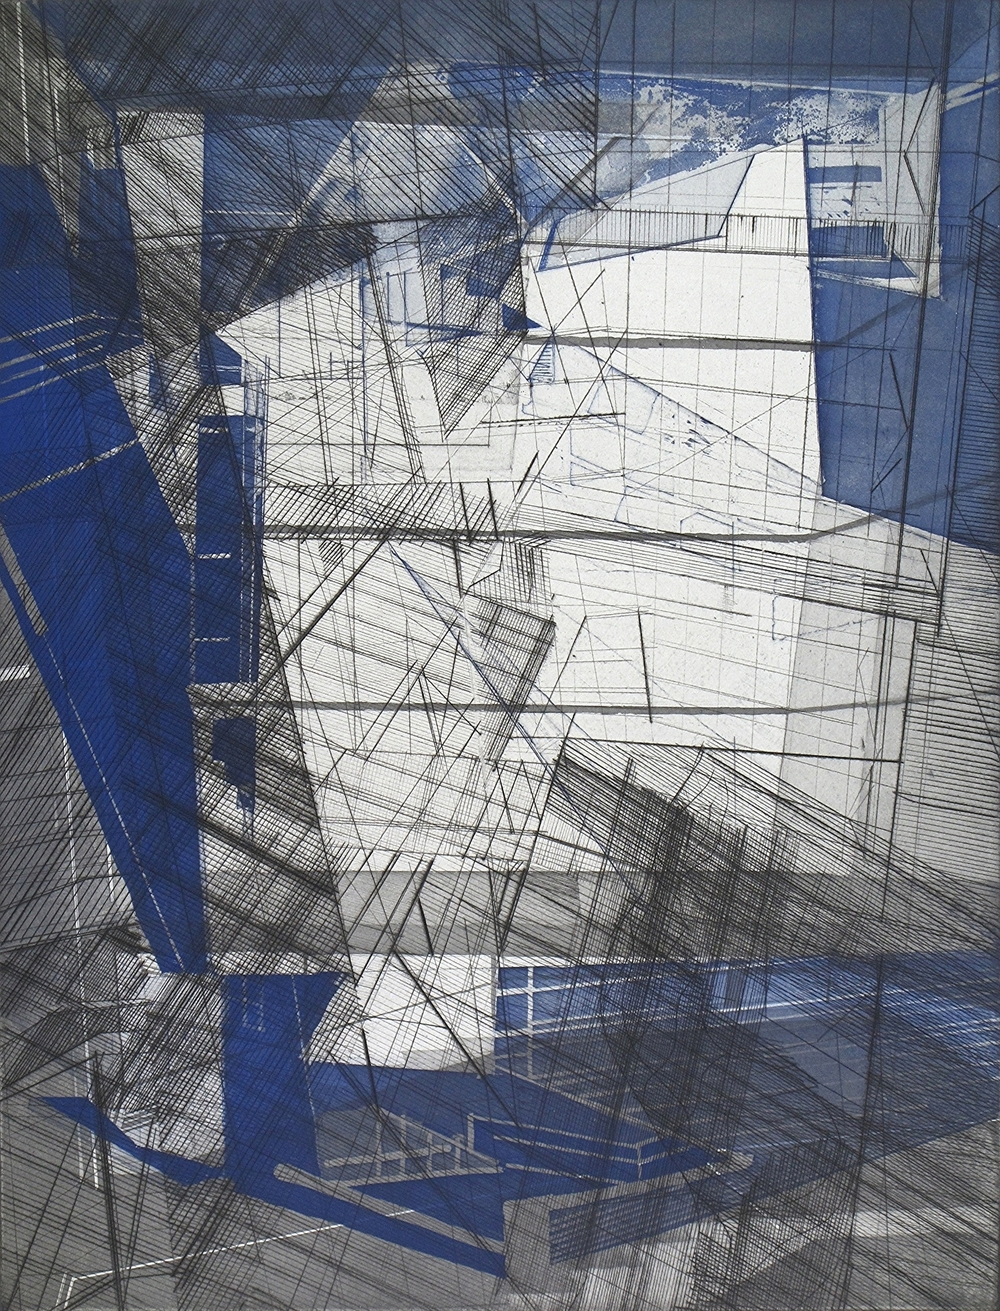 """Architectural Possibles (Folding no. 2), intaglio, 23.5 x 18"""", 2014 Ed. 5  Available for purchase, $700.00"""